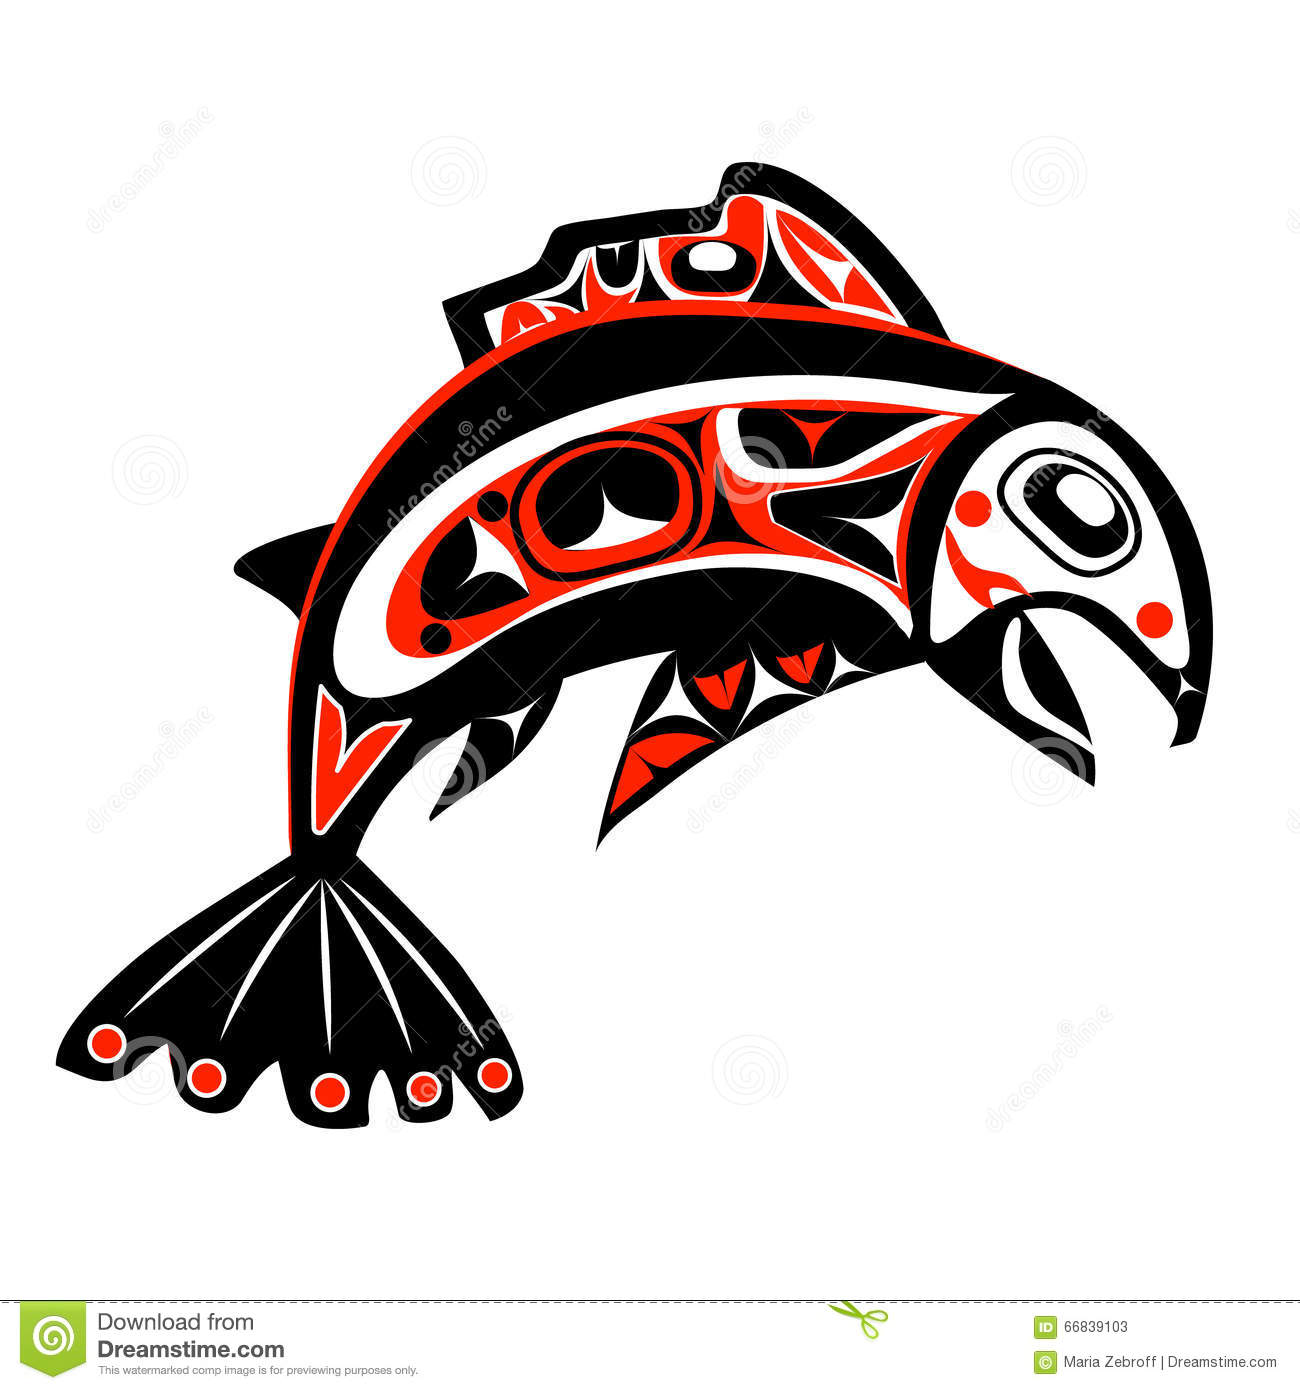 Haida Stock Illustrations – 250 Haida Stock Illustrations, Vectors ...